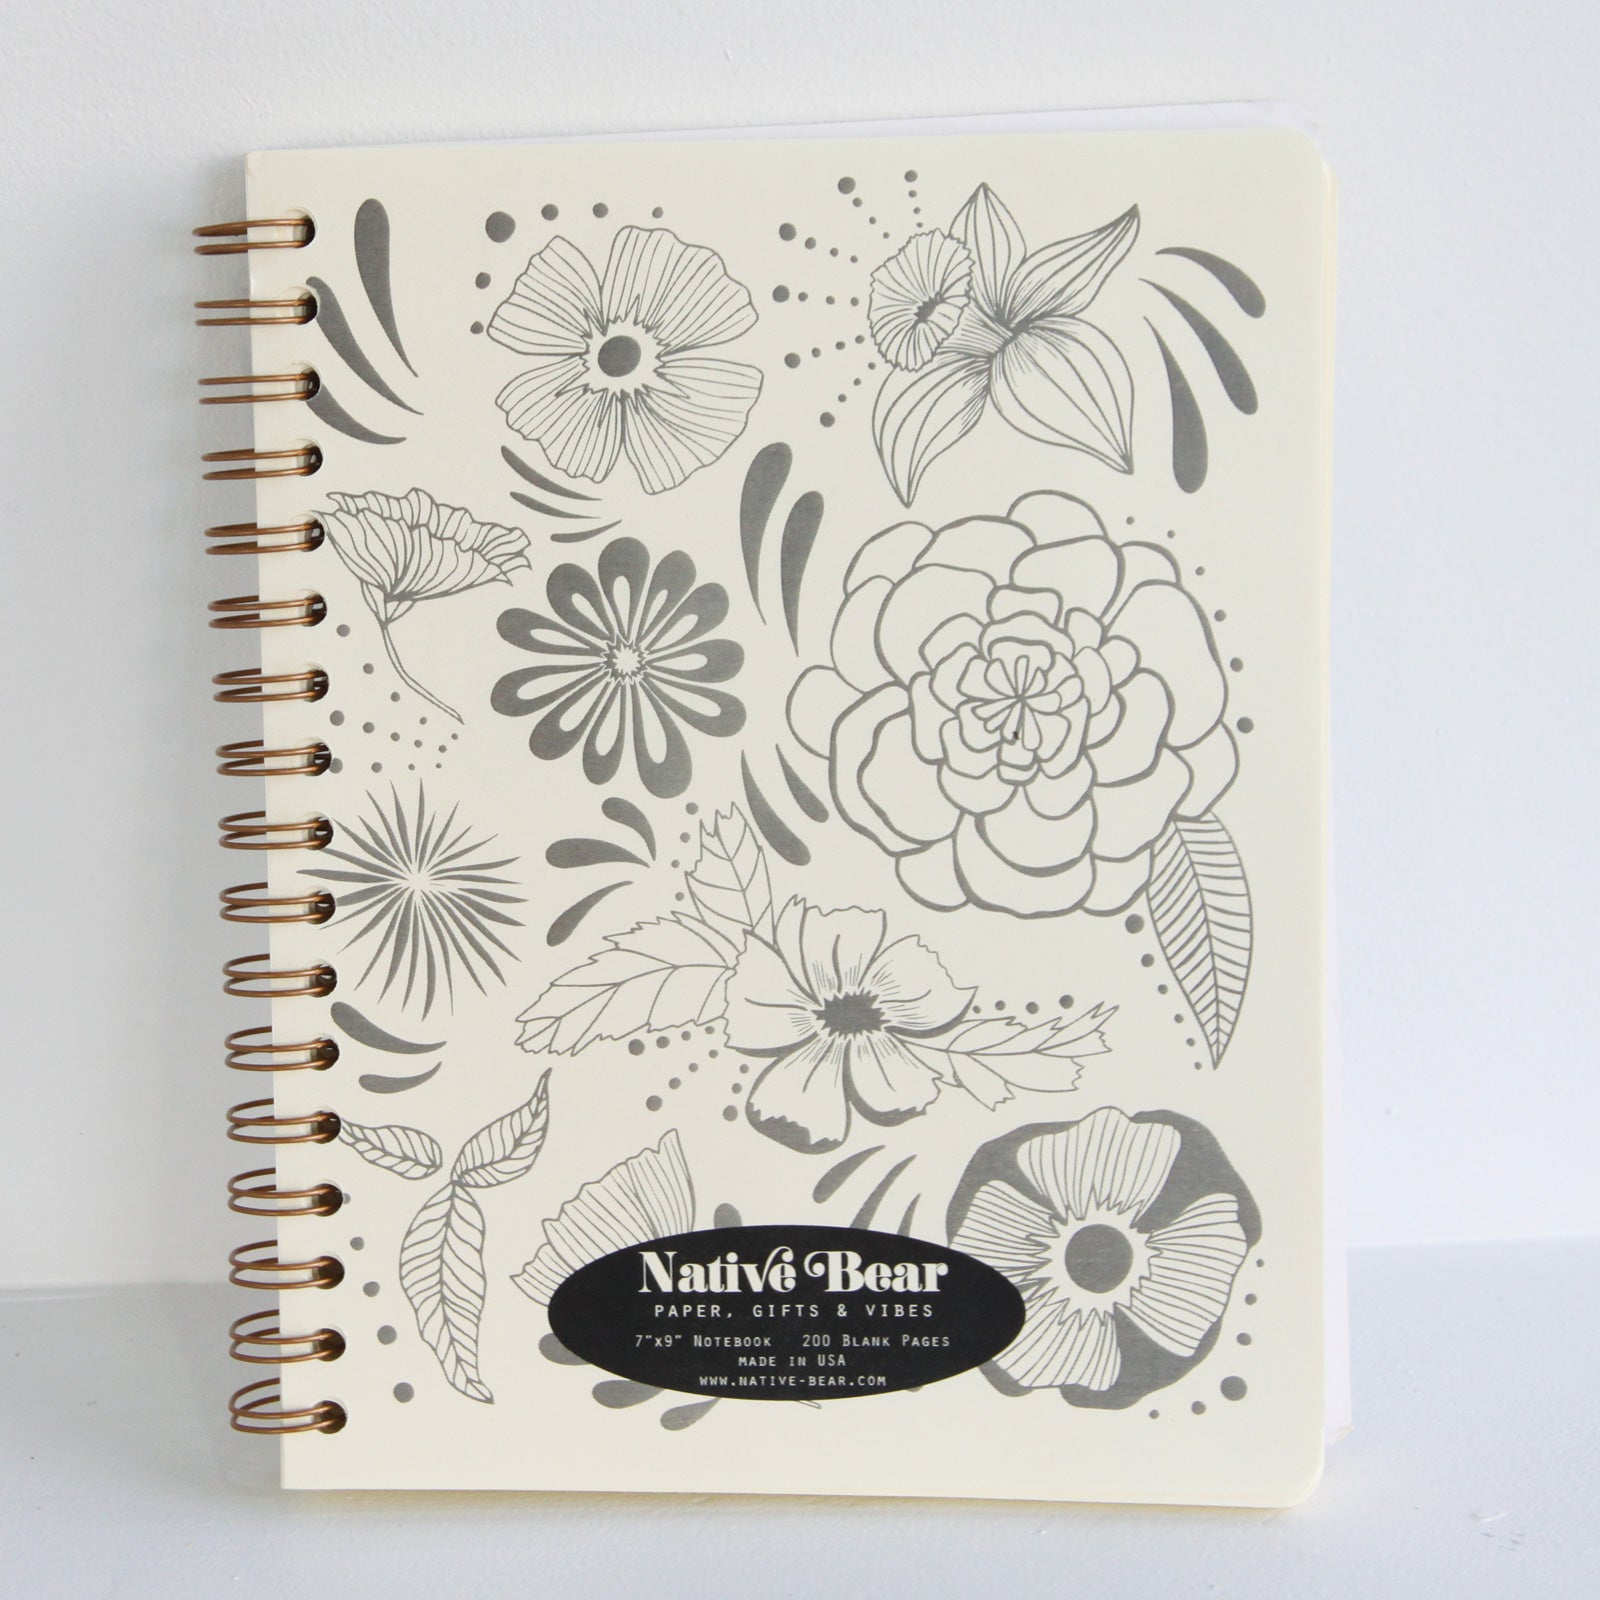 Flower Power Spiral Journal | Native Bear -Leela Hoehn | Augusta, GA at Sustain - Gallery and Shop - Chicago, IL